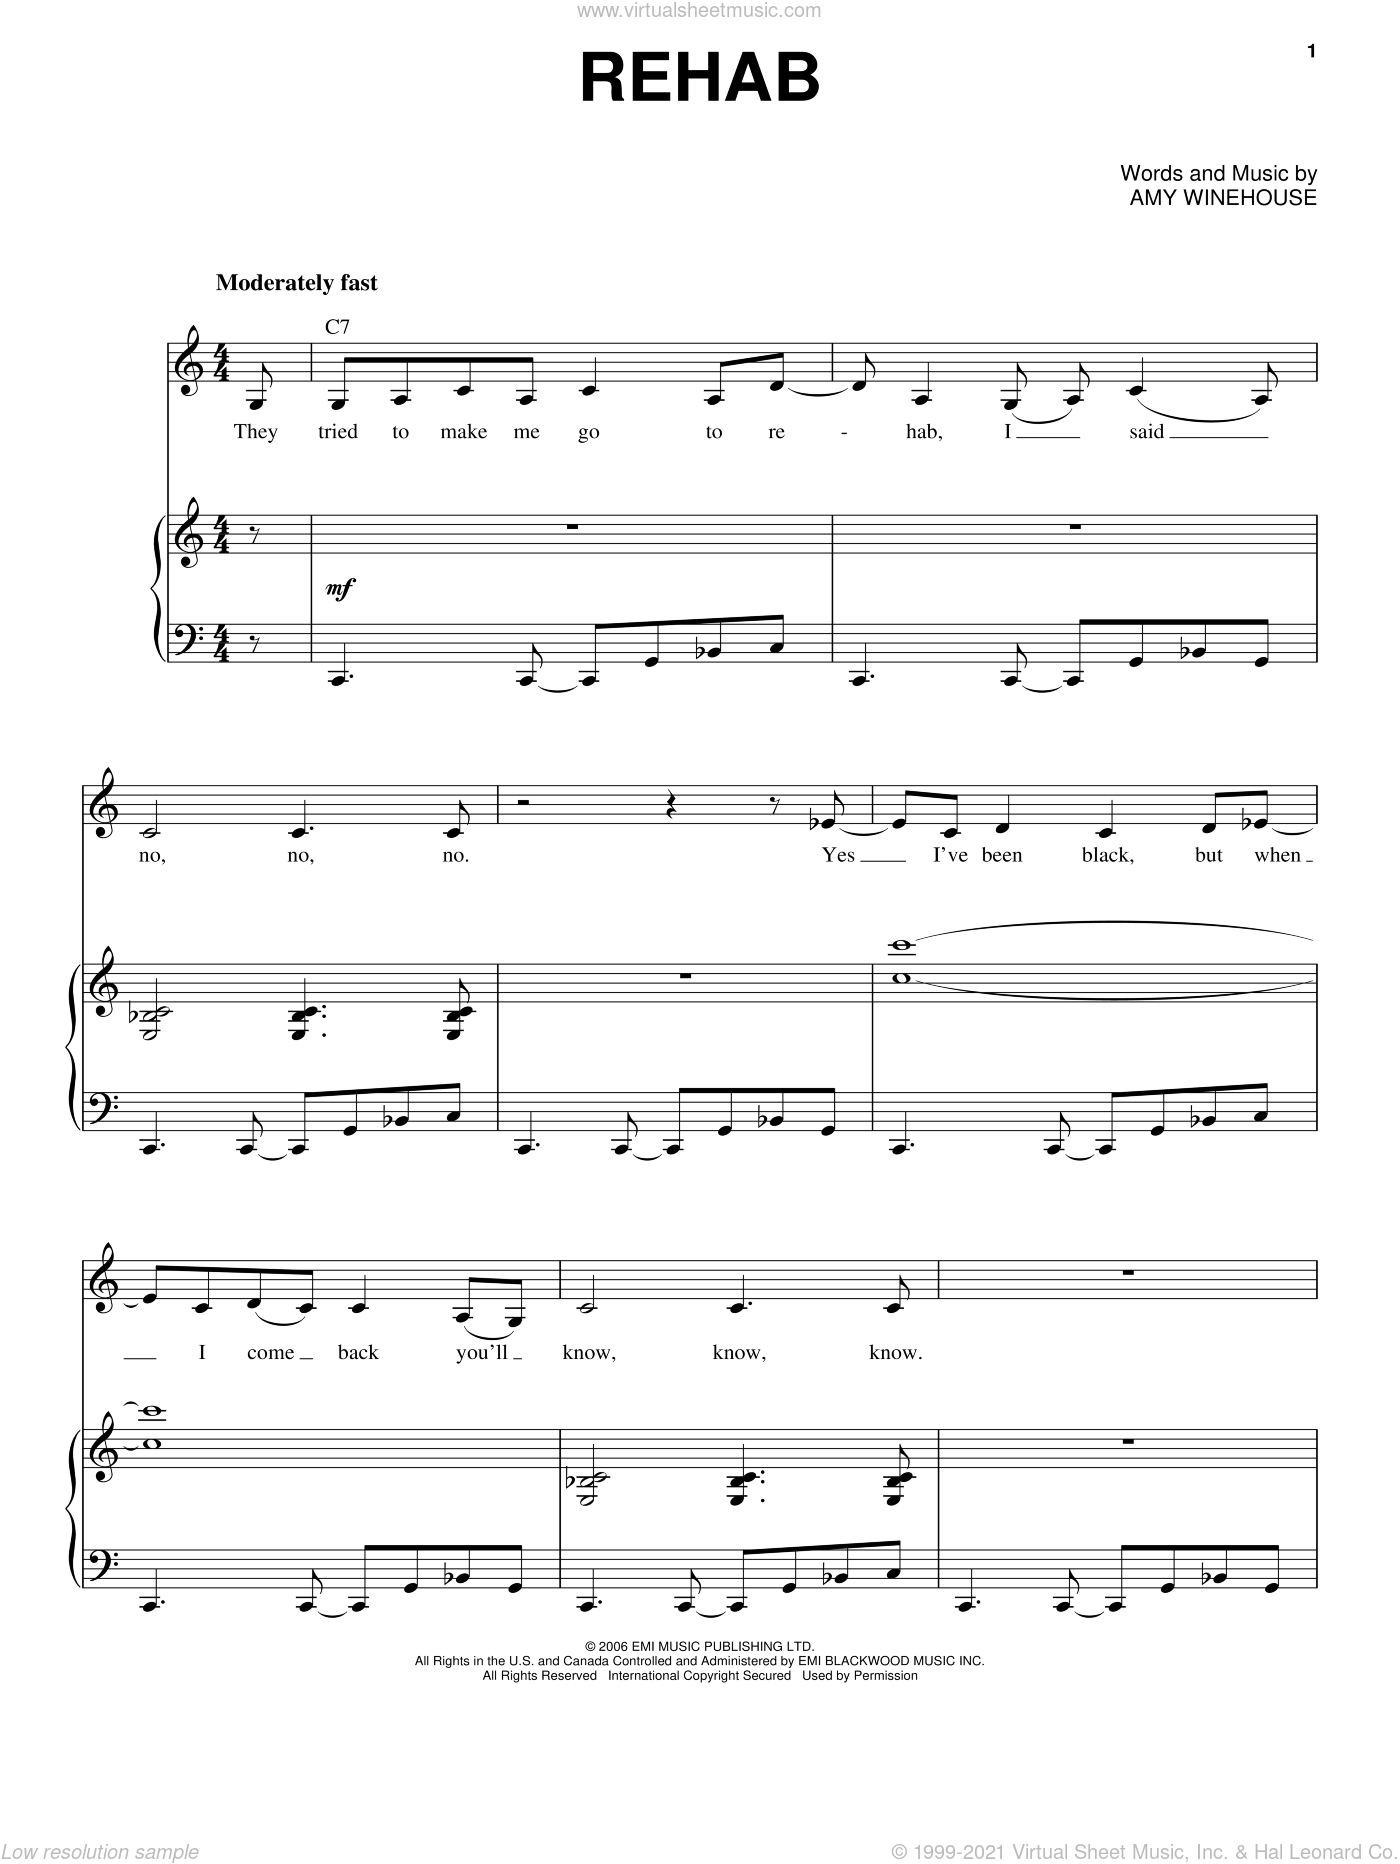 Rehab sheet music for voice and piano by Amy Winehouse, intermediate skill level